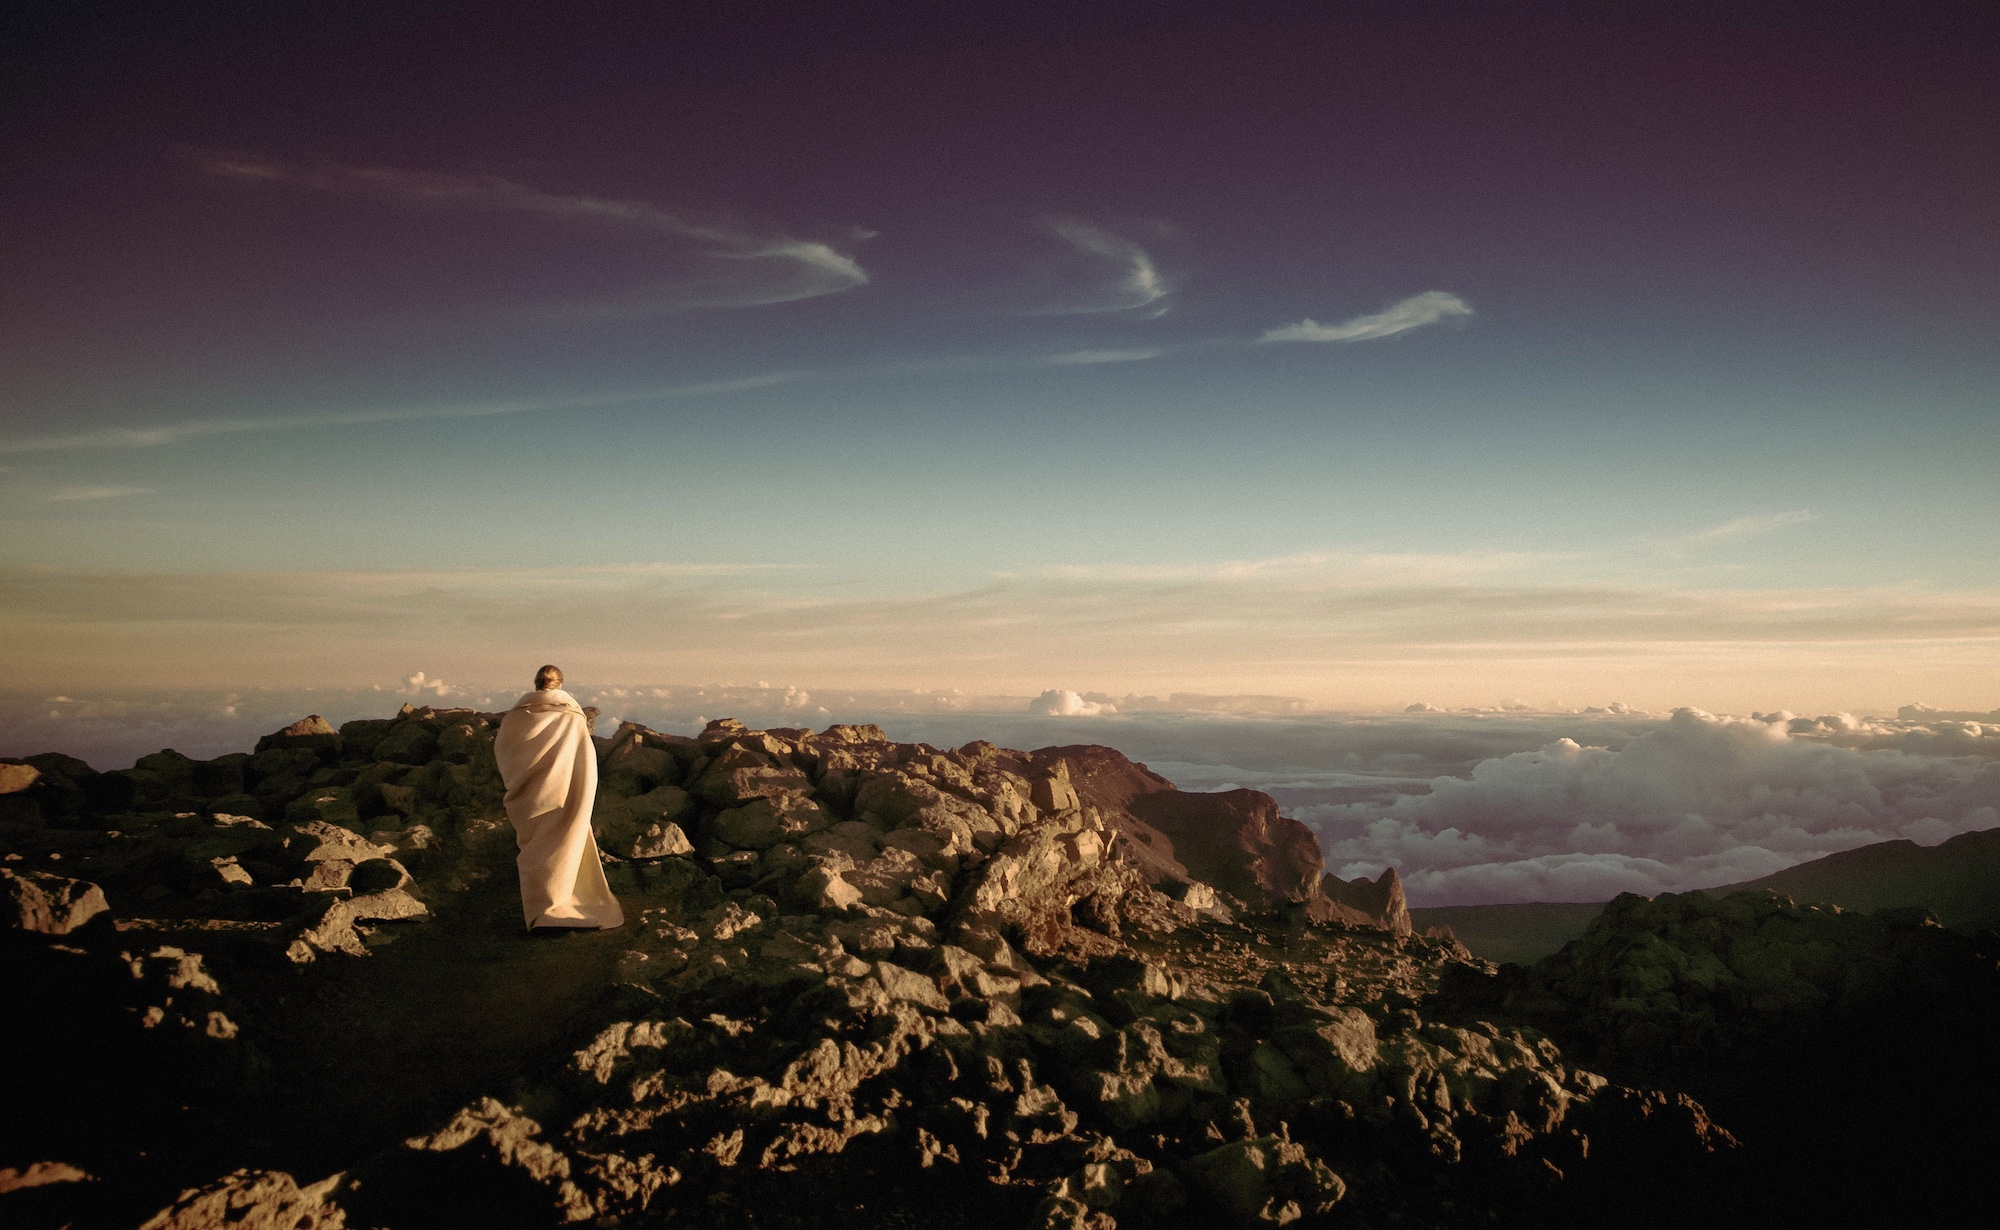 Monk in white wrap on top of a mountain, overlooking the clouds.